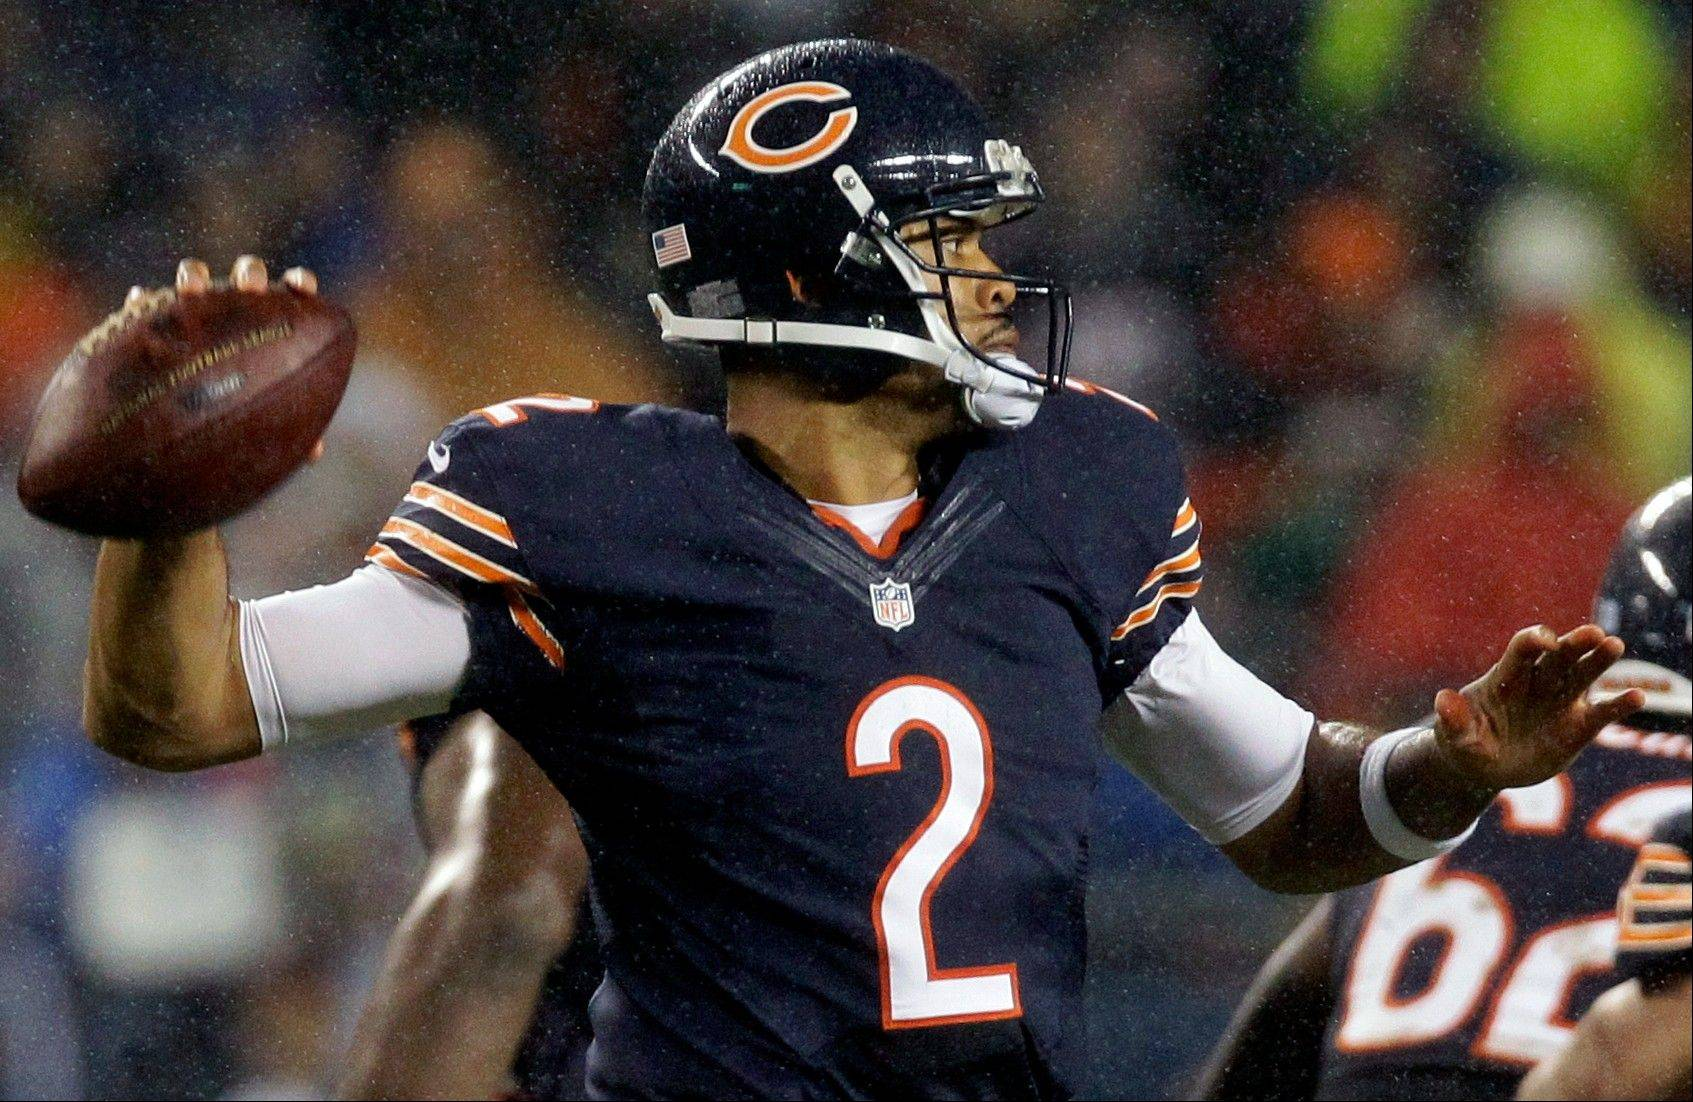 Against the 49ers on Monday night, quarterback Jason Campbell might want to show a little bit more of why the Bears were so happy to bring him in last off-season as Jay Cutler's backup.